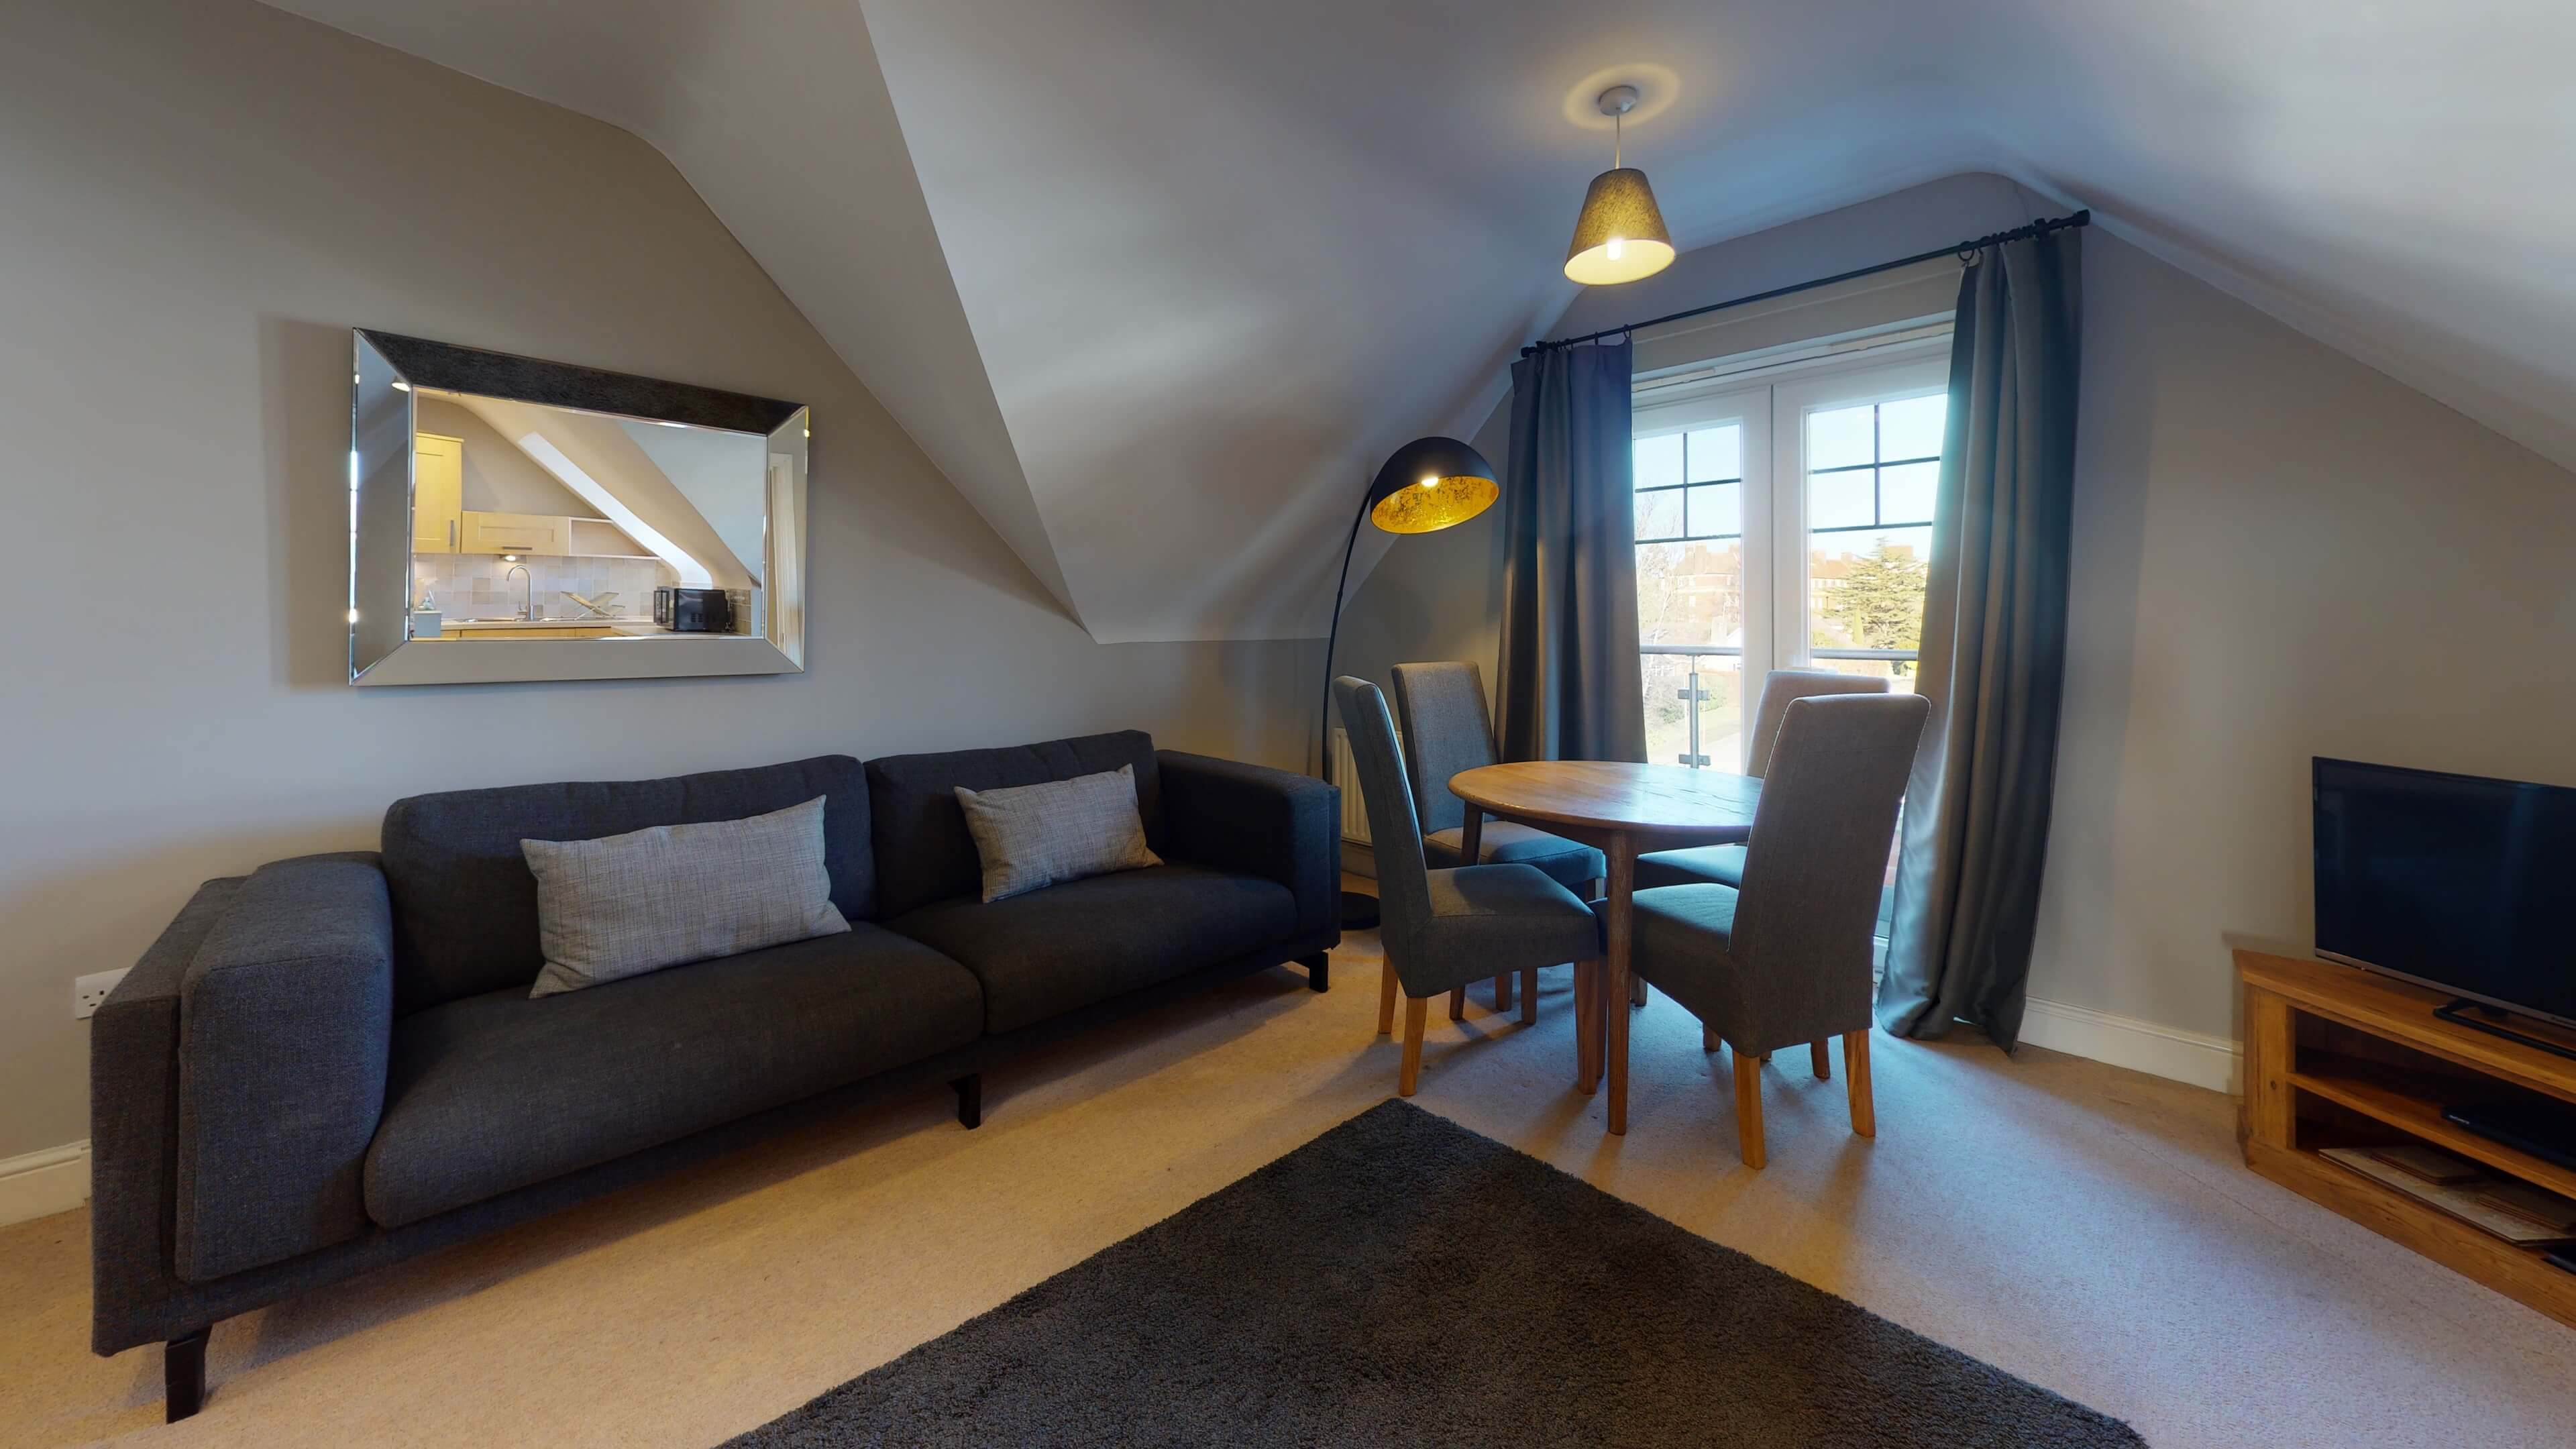 The Churchill Suite Furnished Oxford Apartment Churchill Suite Oxford Furnished Apartment23